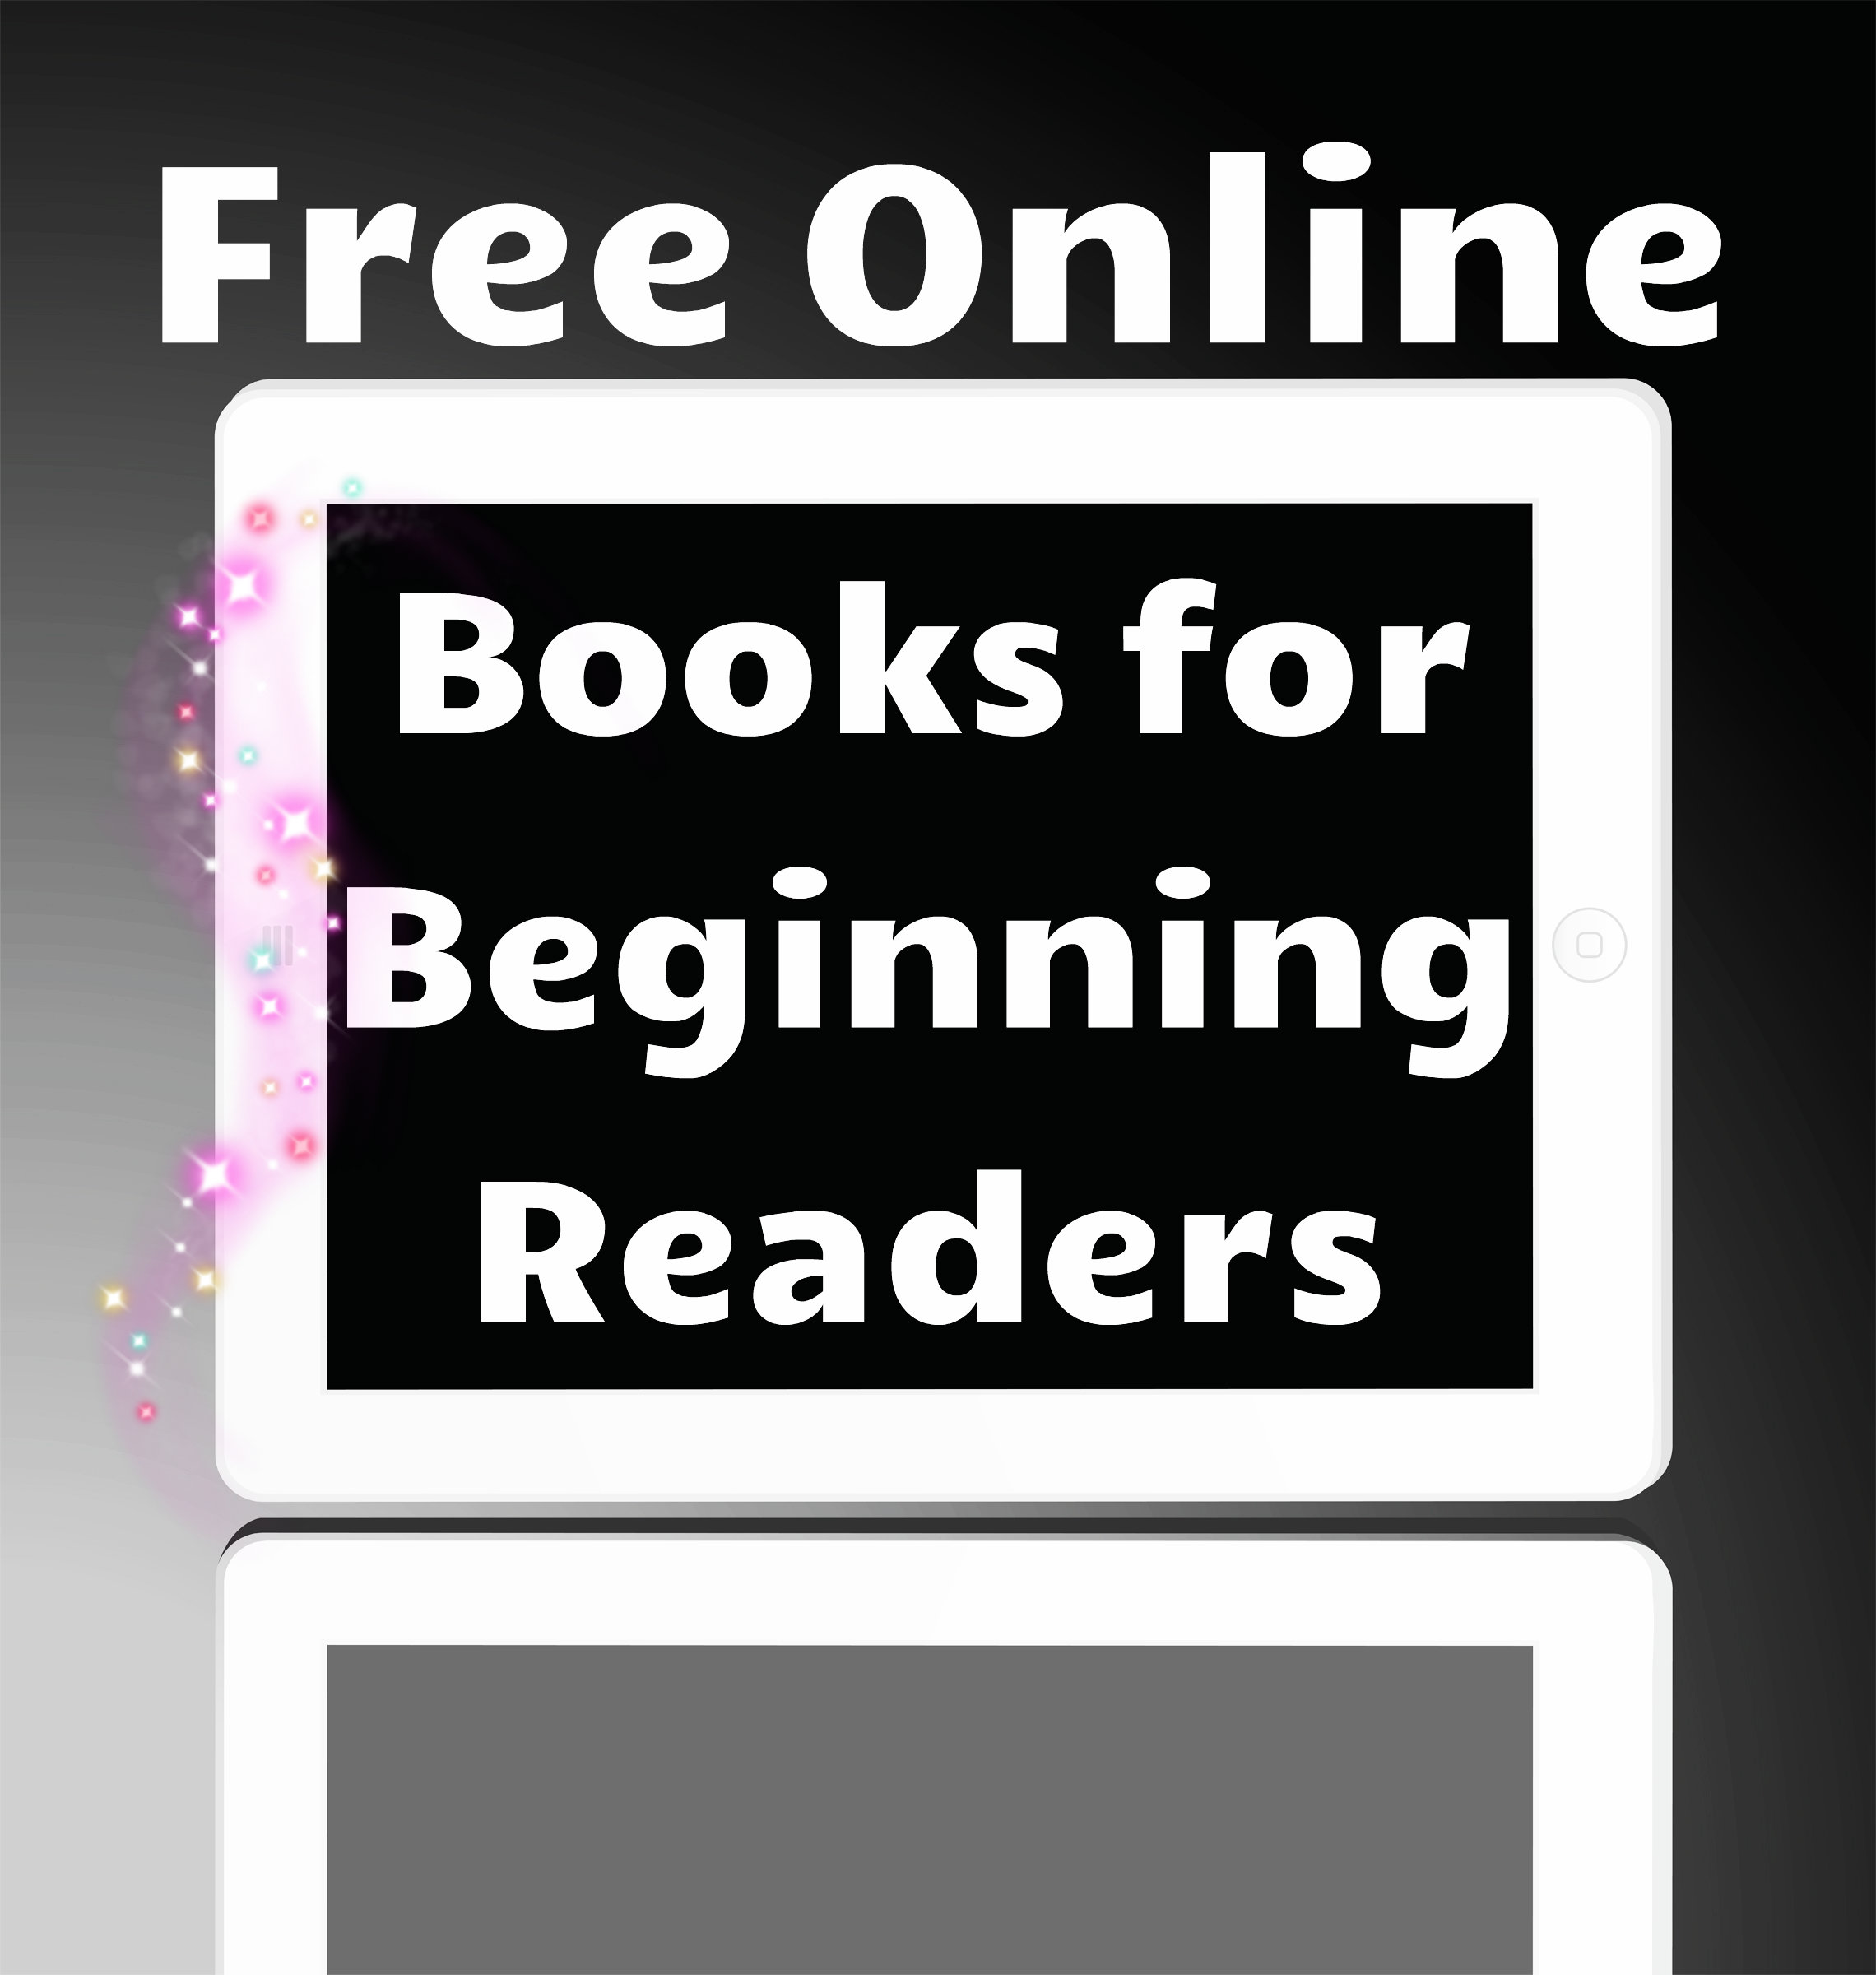 Free online book for beginning readers